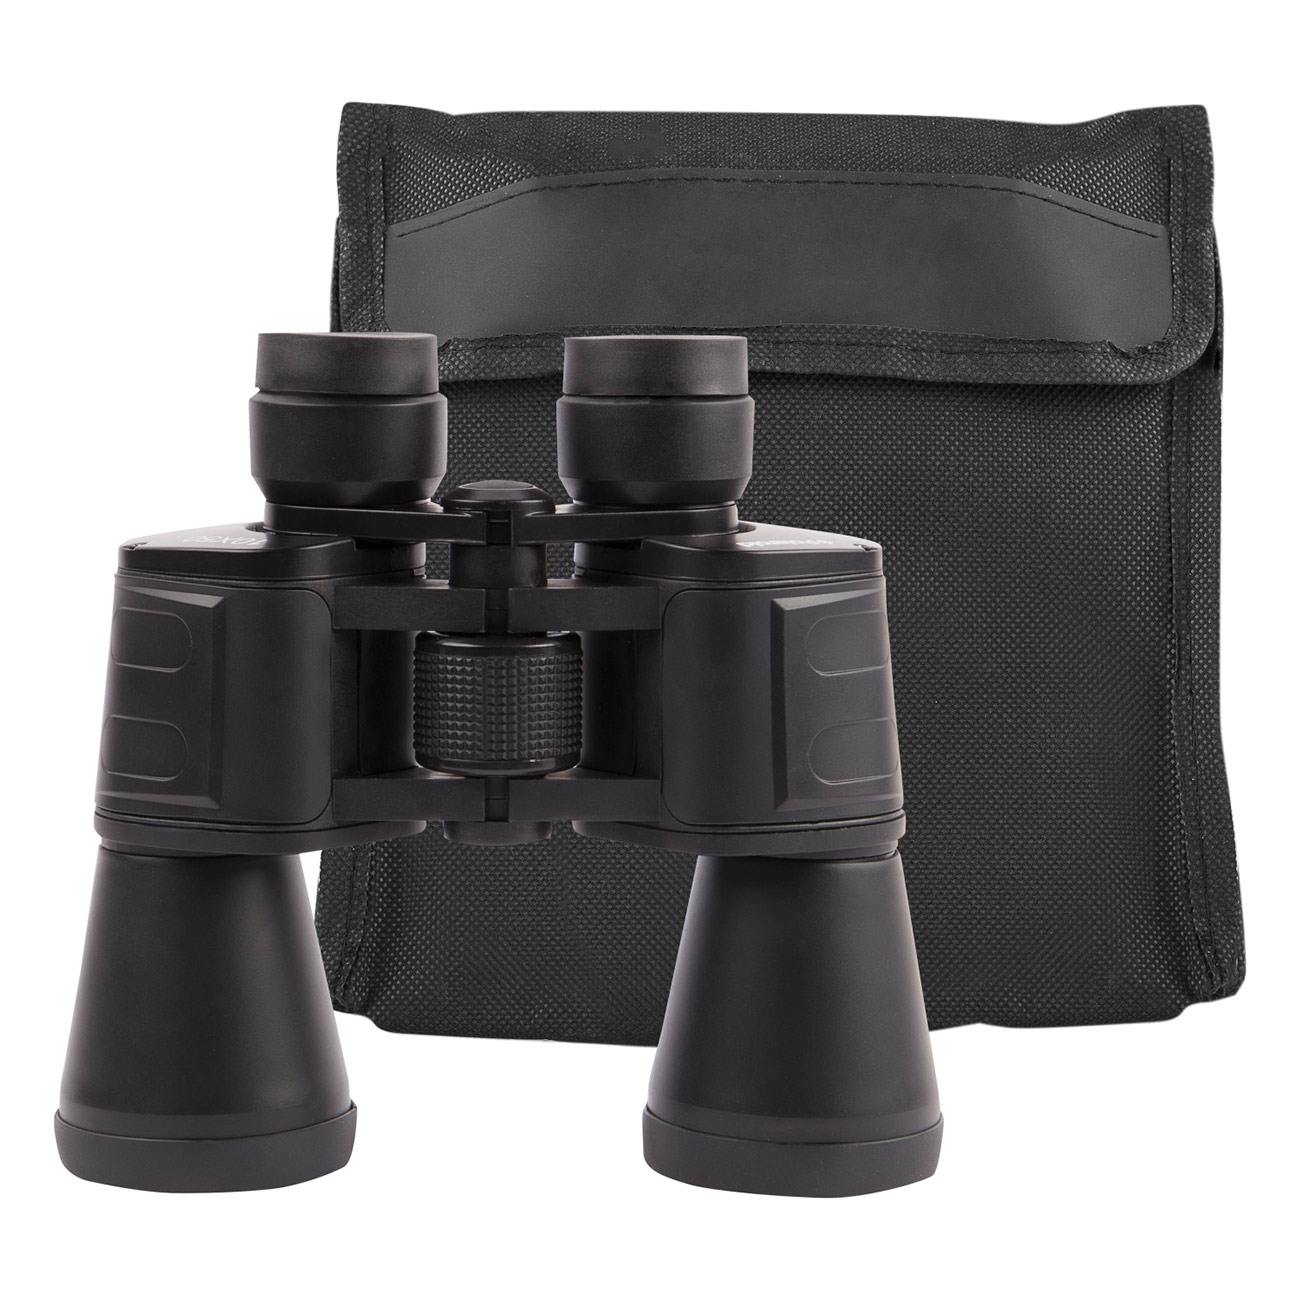 Polaroid 10x50 Sports Binoculars with Case and Shoulder Strap